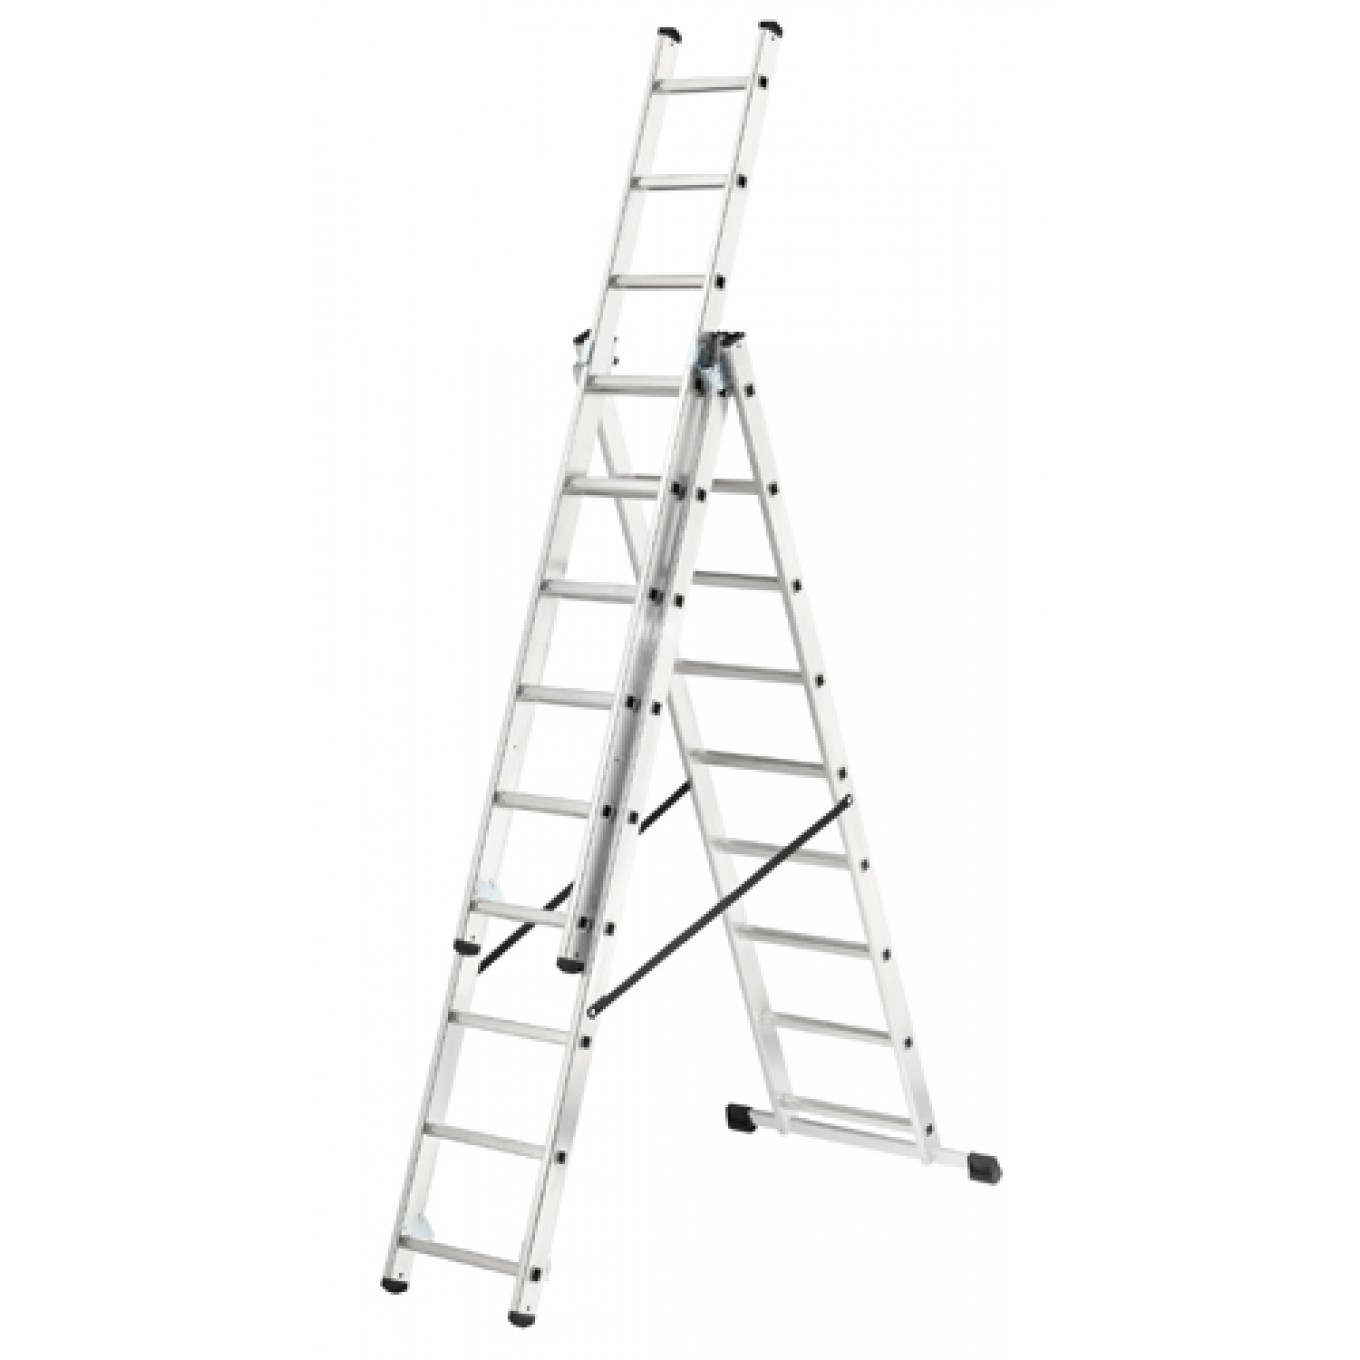 Ladder Line Drawing At Getdrawings